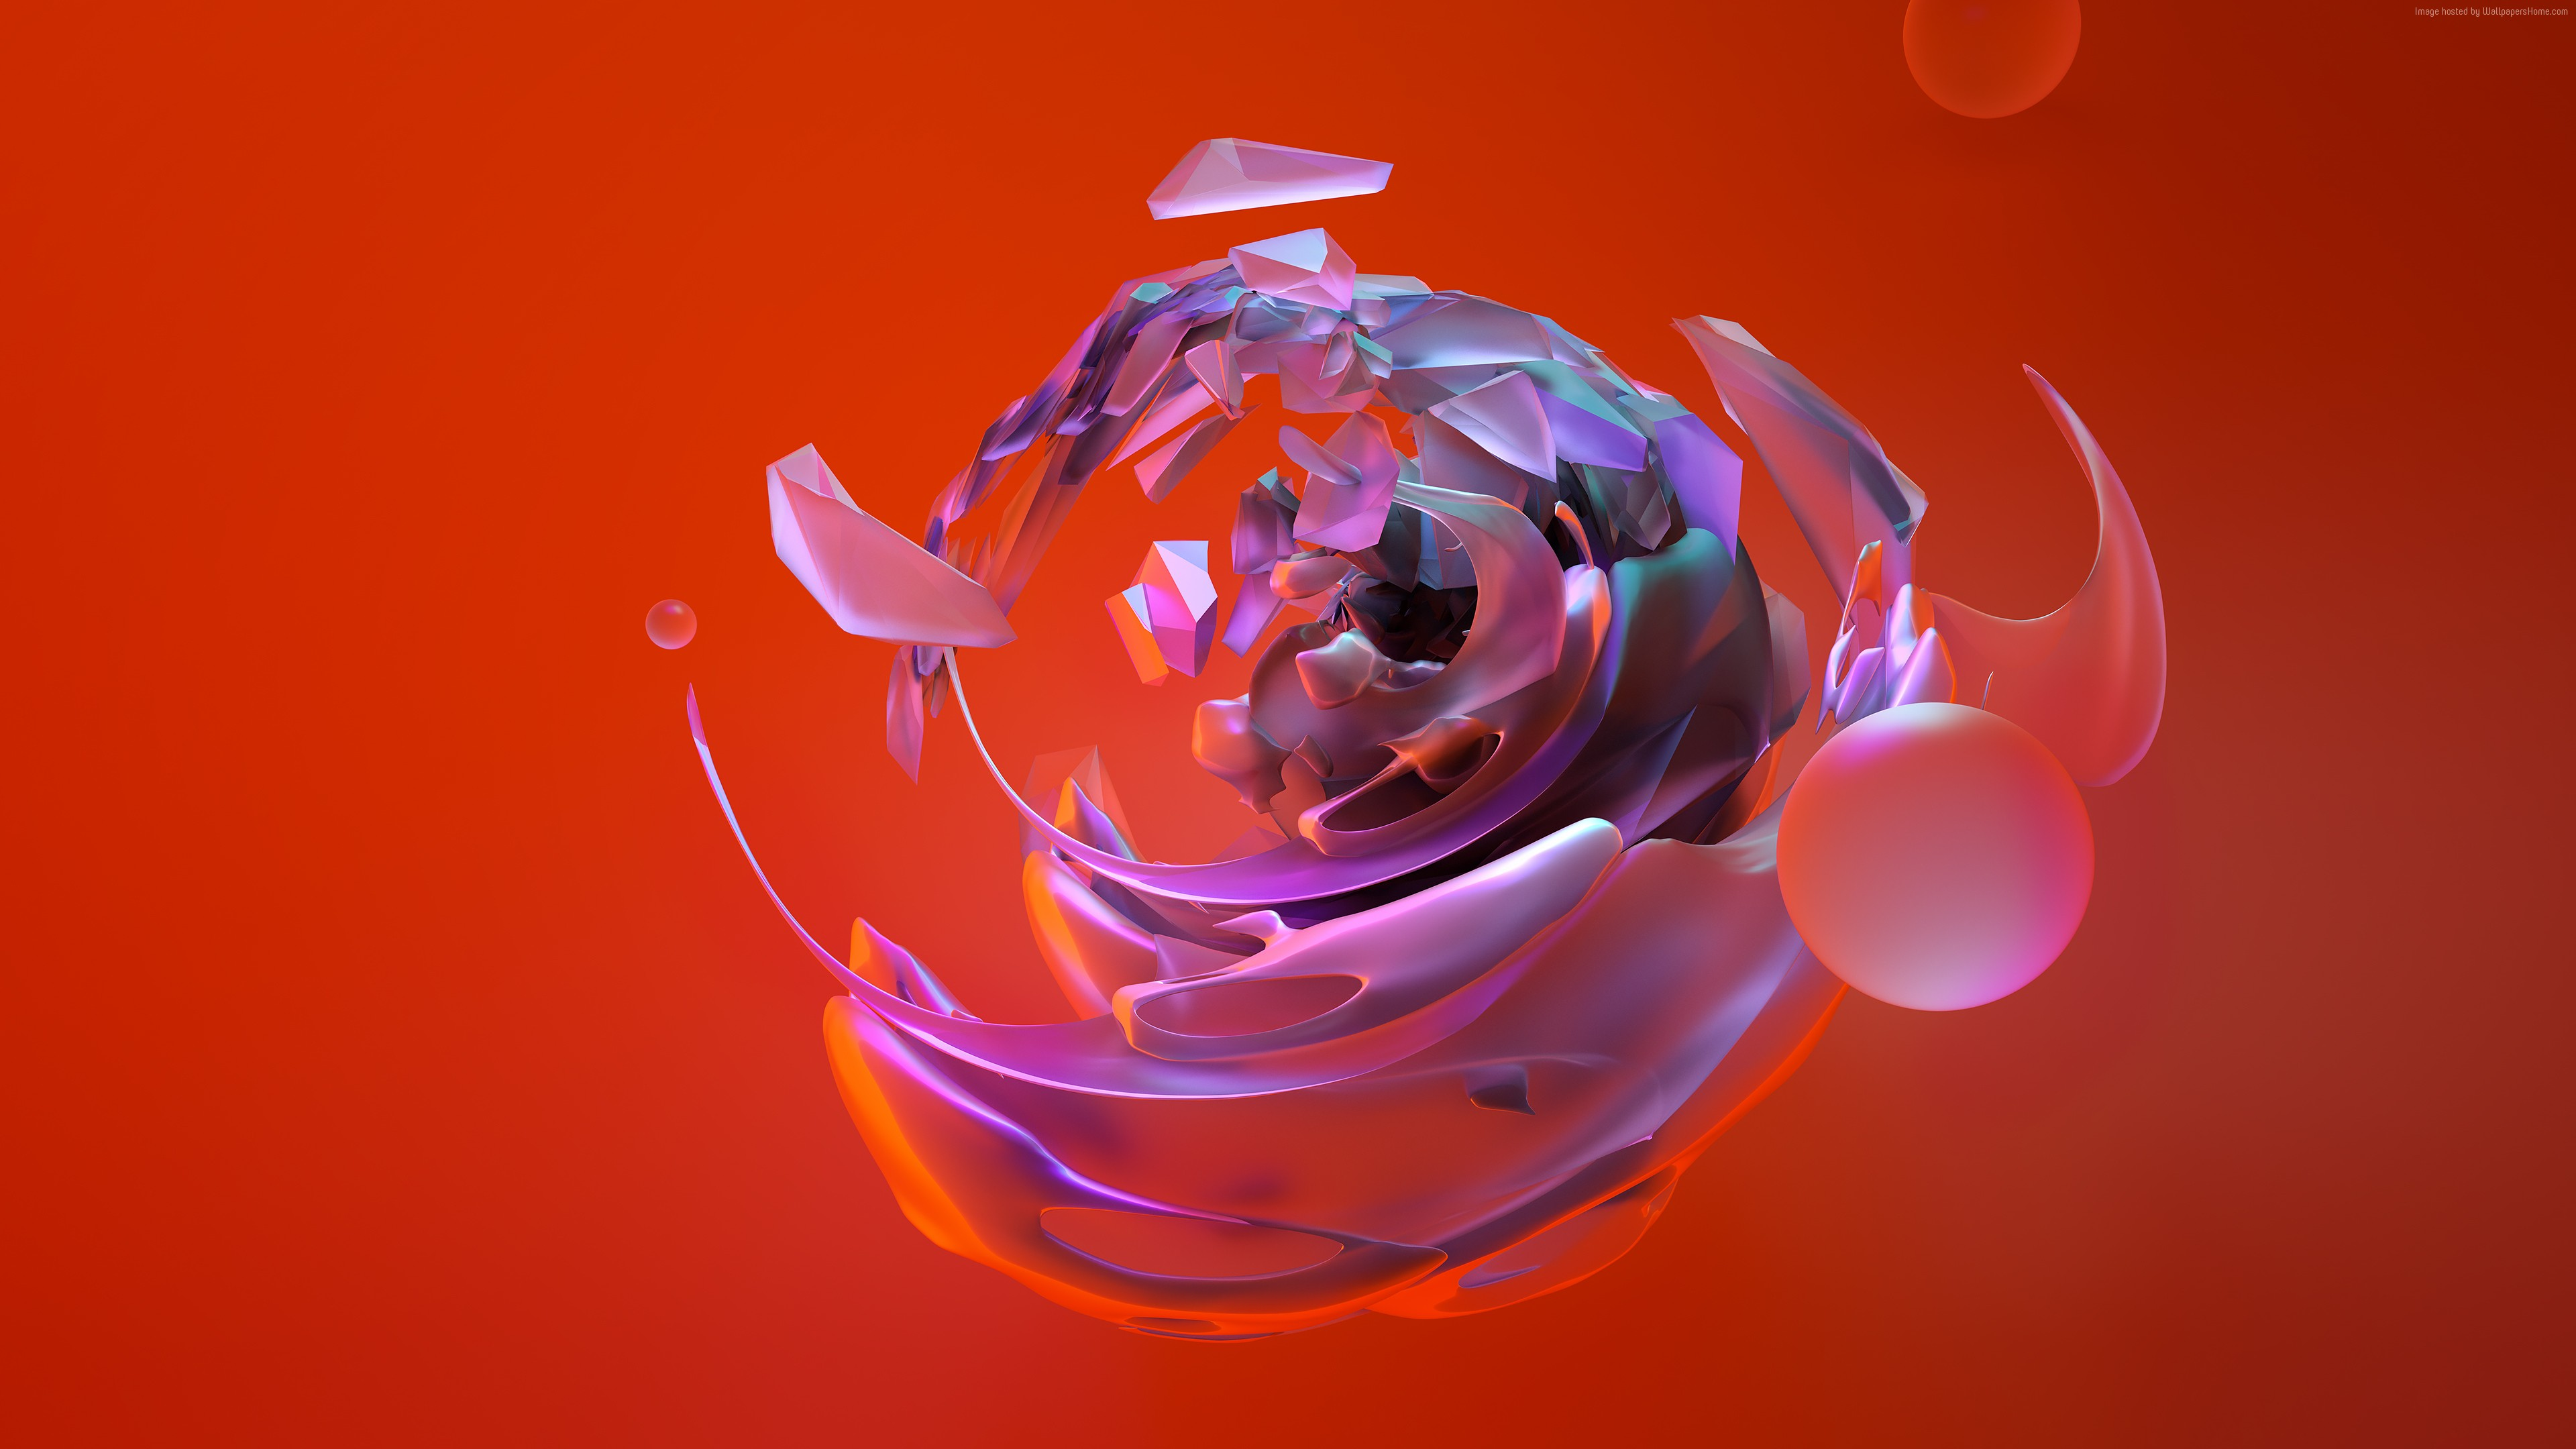 Wallpaper 3D, sphere, abstract, shapes, 4k, Abstract